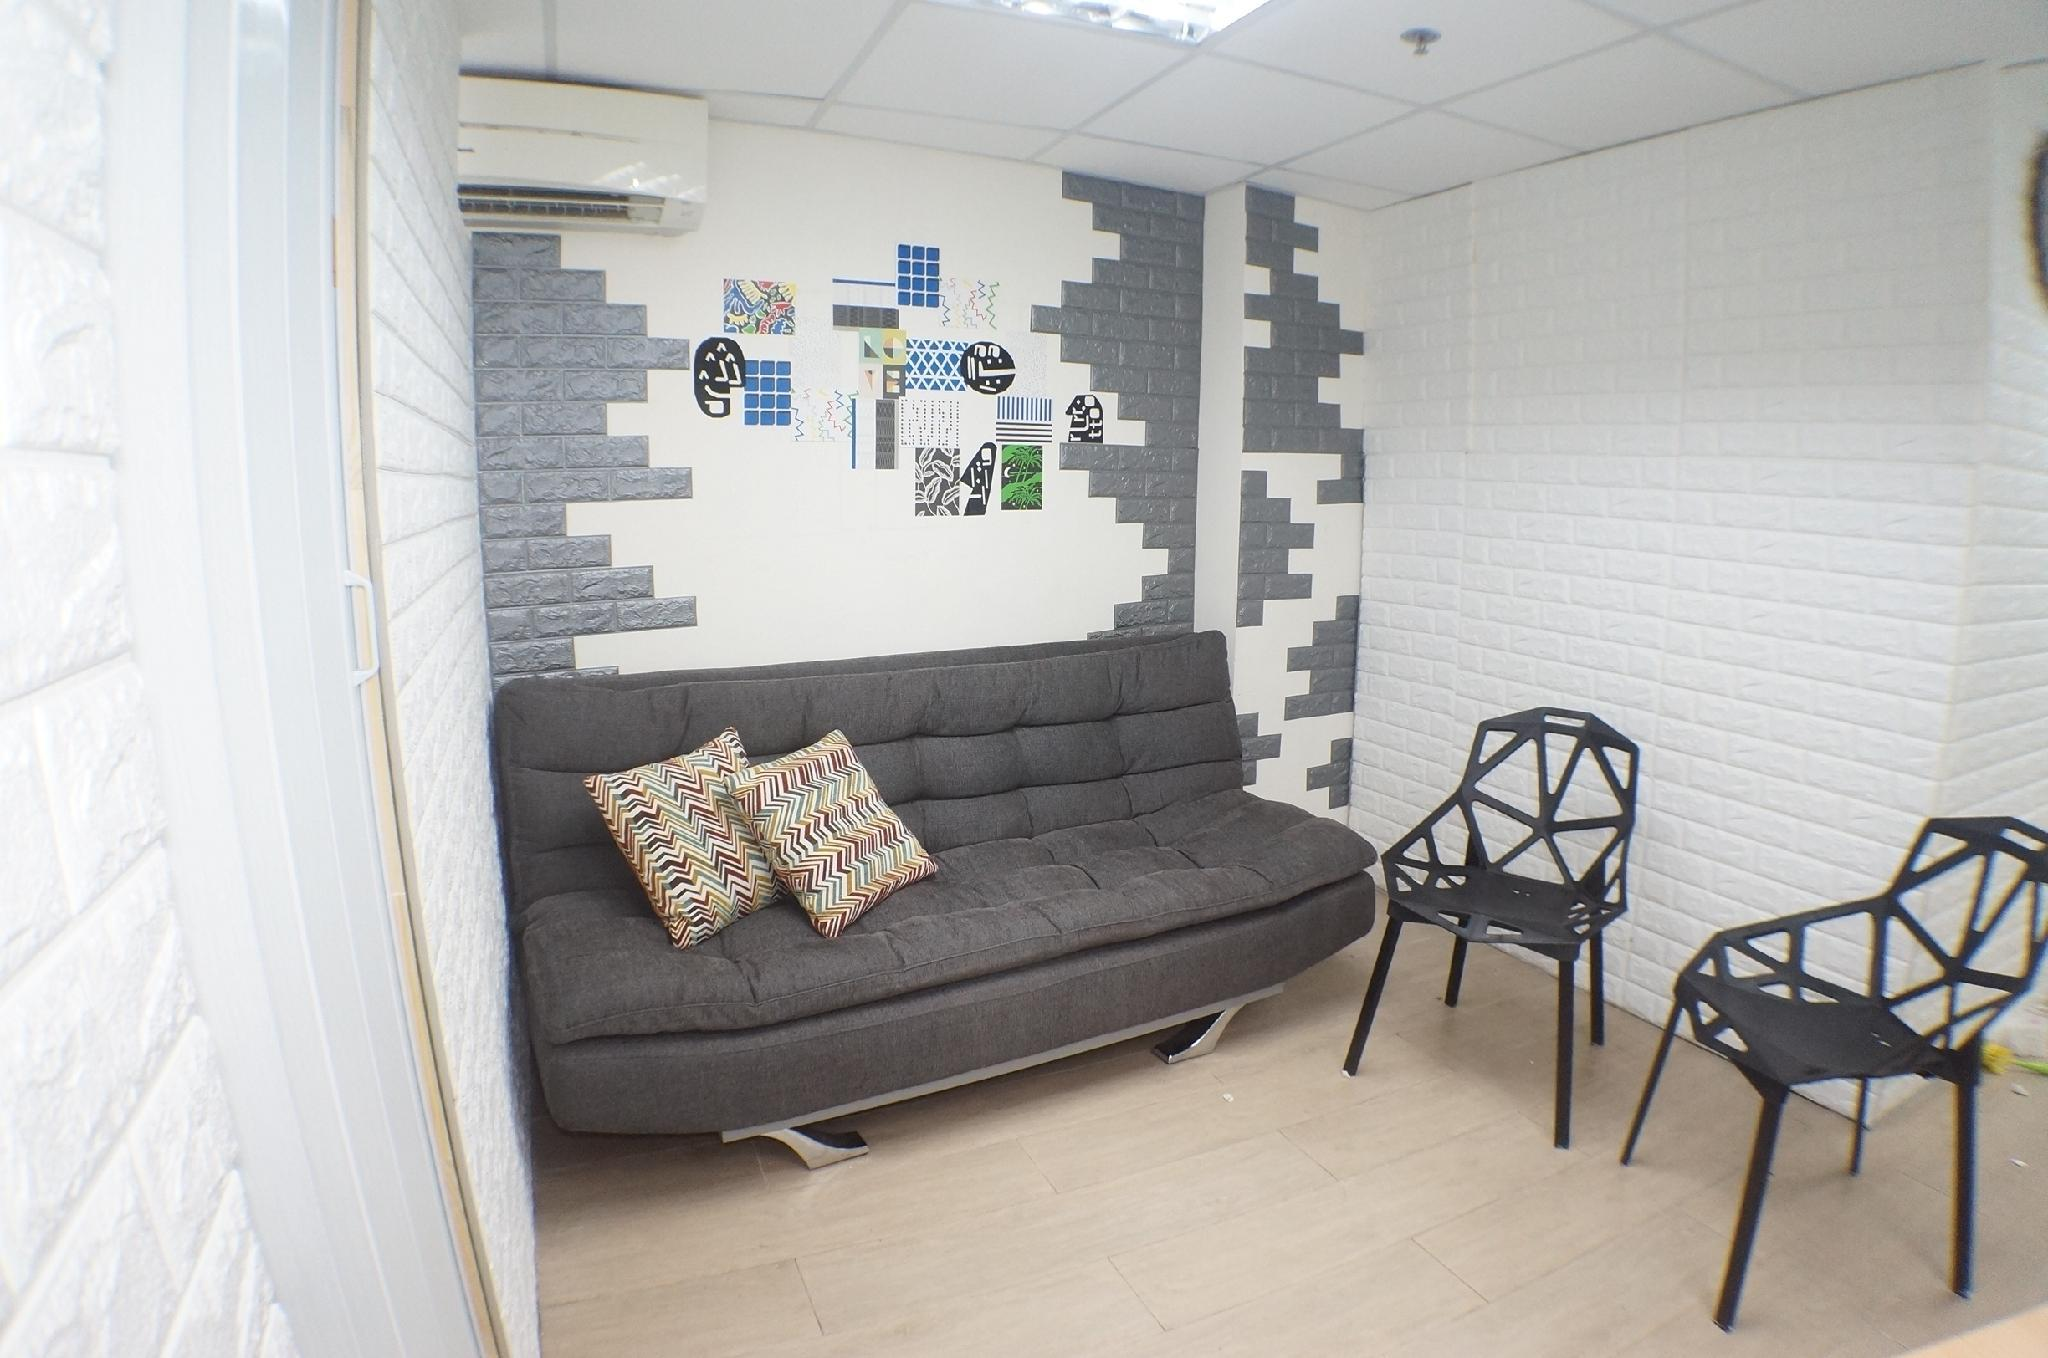 4 Bedrooms Apartment Sleeps 4 10 Close To MTR 8